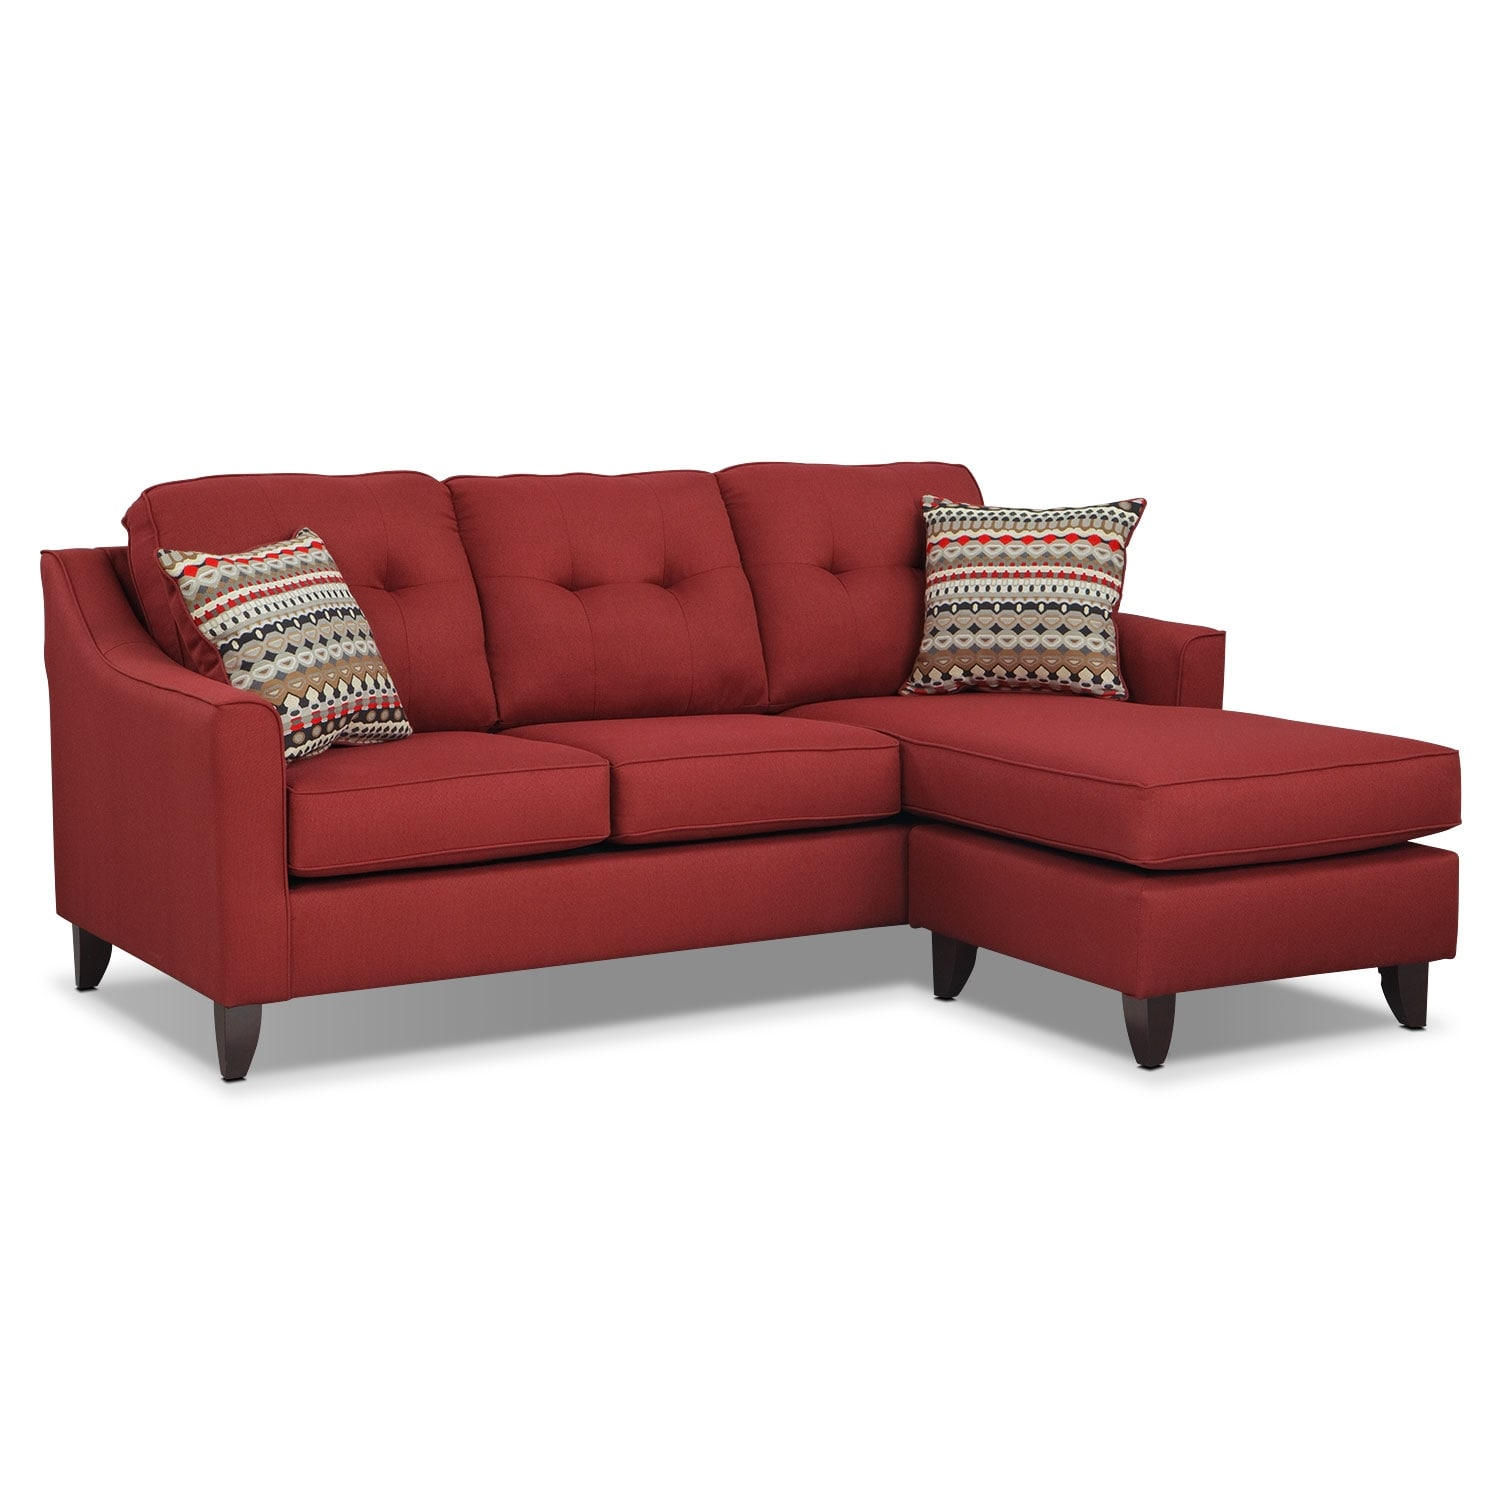 American Furniture Warehouse Sectionals Living Room Furniture - Marco Chaise Sofa - Red